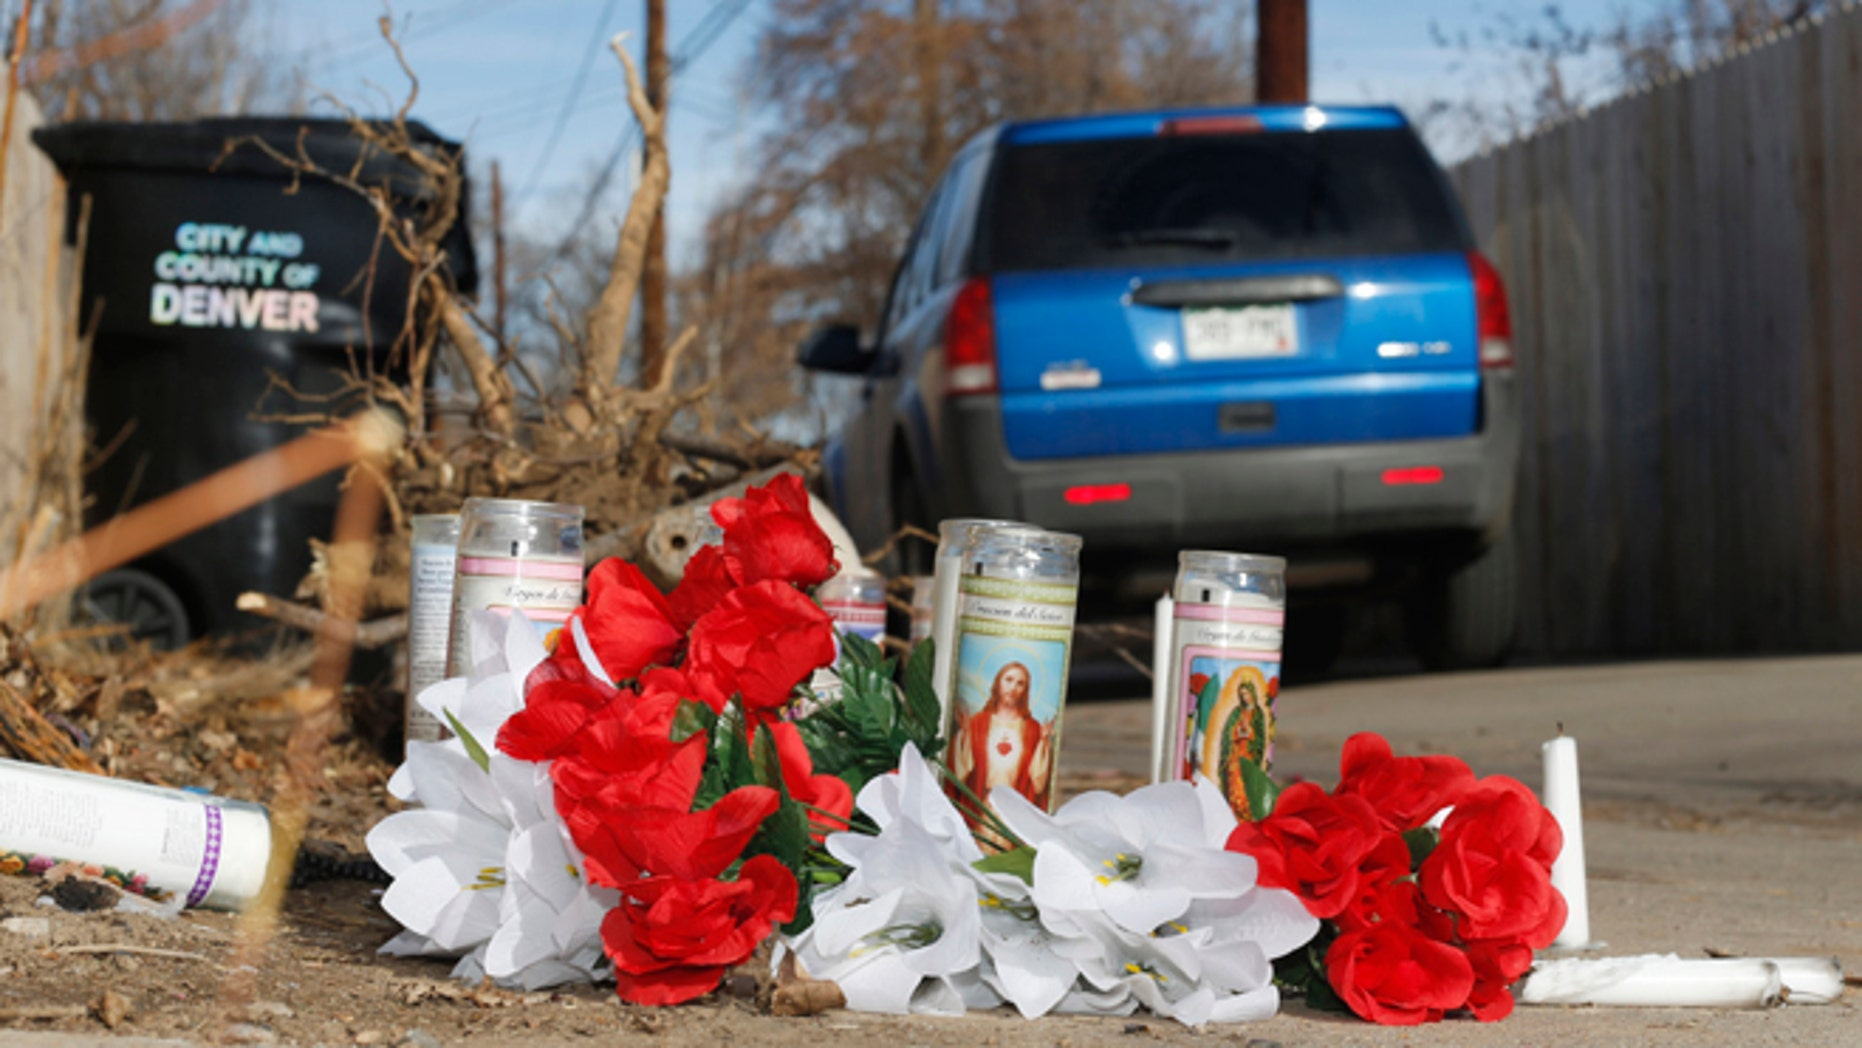 File--In this file photograph taken Tuesday, Jan. 27, 2015, a vehicle passes by the candles and bouquets left near the scene of a fatal police shooting in an alleyway in northeast Denver. A 17-year-old woman was fatally shot by police after she allegedly hit and injured an officer while driving a stolen vehicle early Monday, Jan. 26, in a northeast Denver alleyway. On Friday, June 5, 2015, Denver District Attorney Mitch Morrissey issued a statement saying that the two Denver Police officers involved in the shooting will not face criminal charges. (AP Photo/David Zalubowski, file)